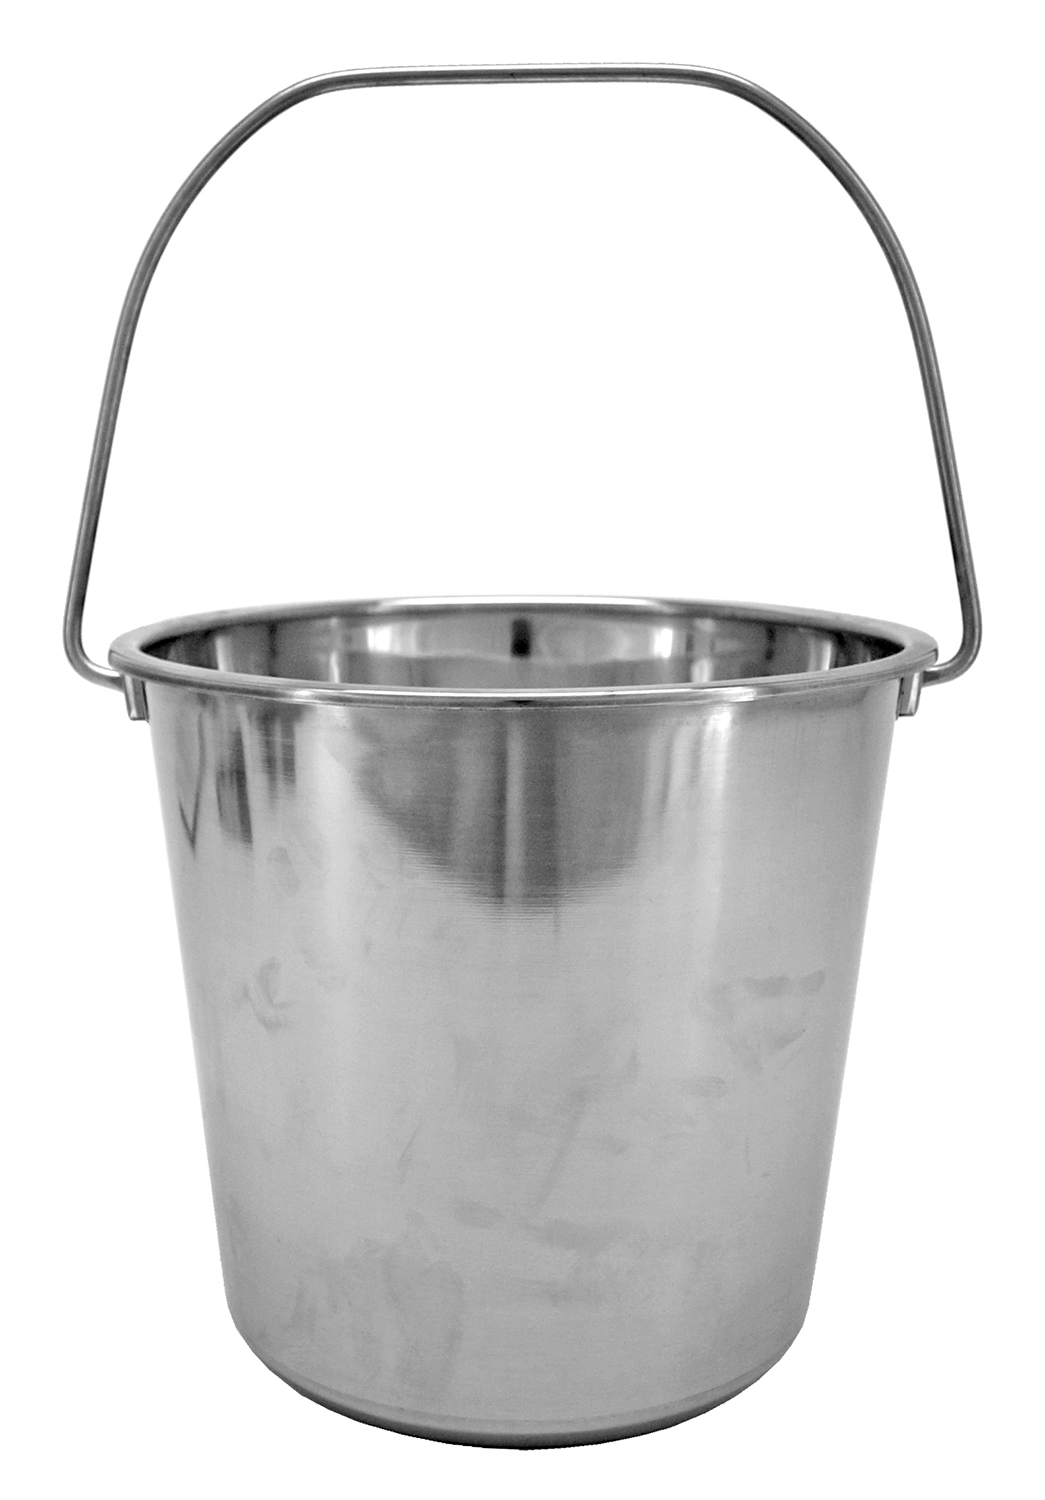 2 - Gallon Stainless Steel Bucket